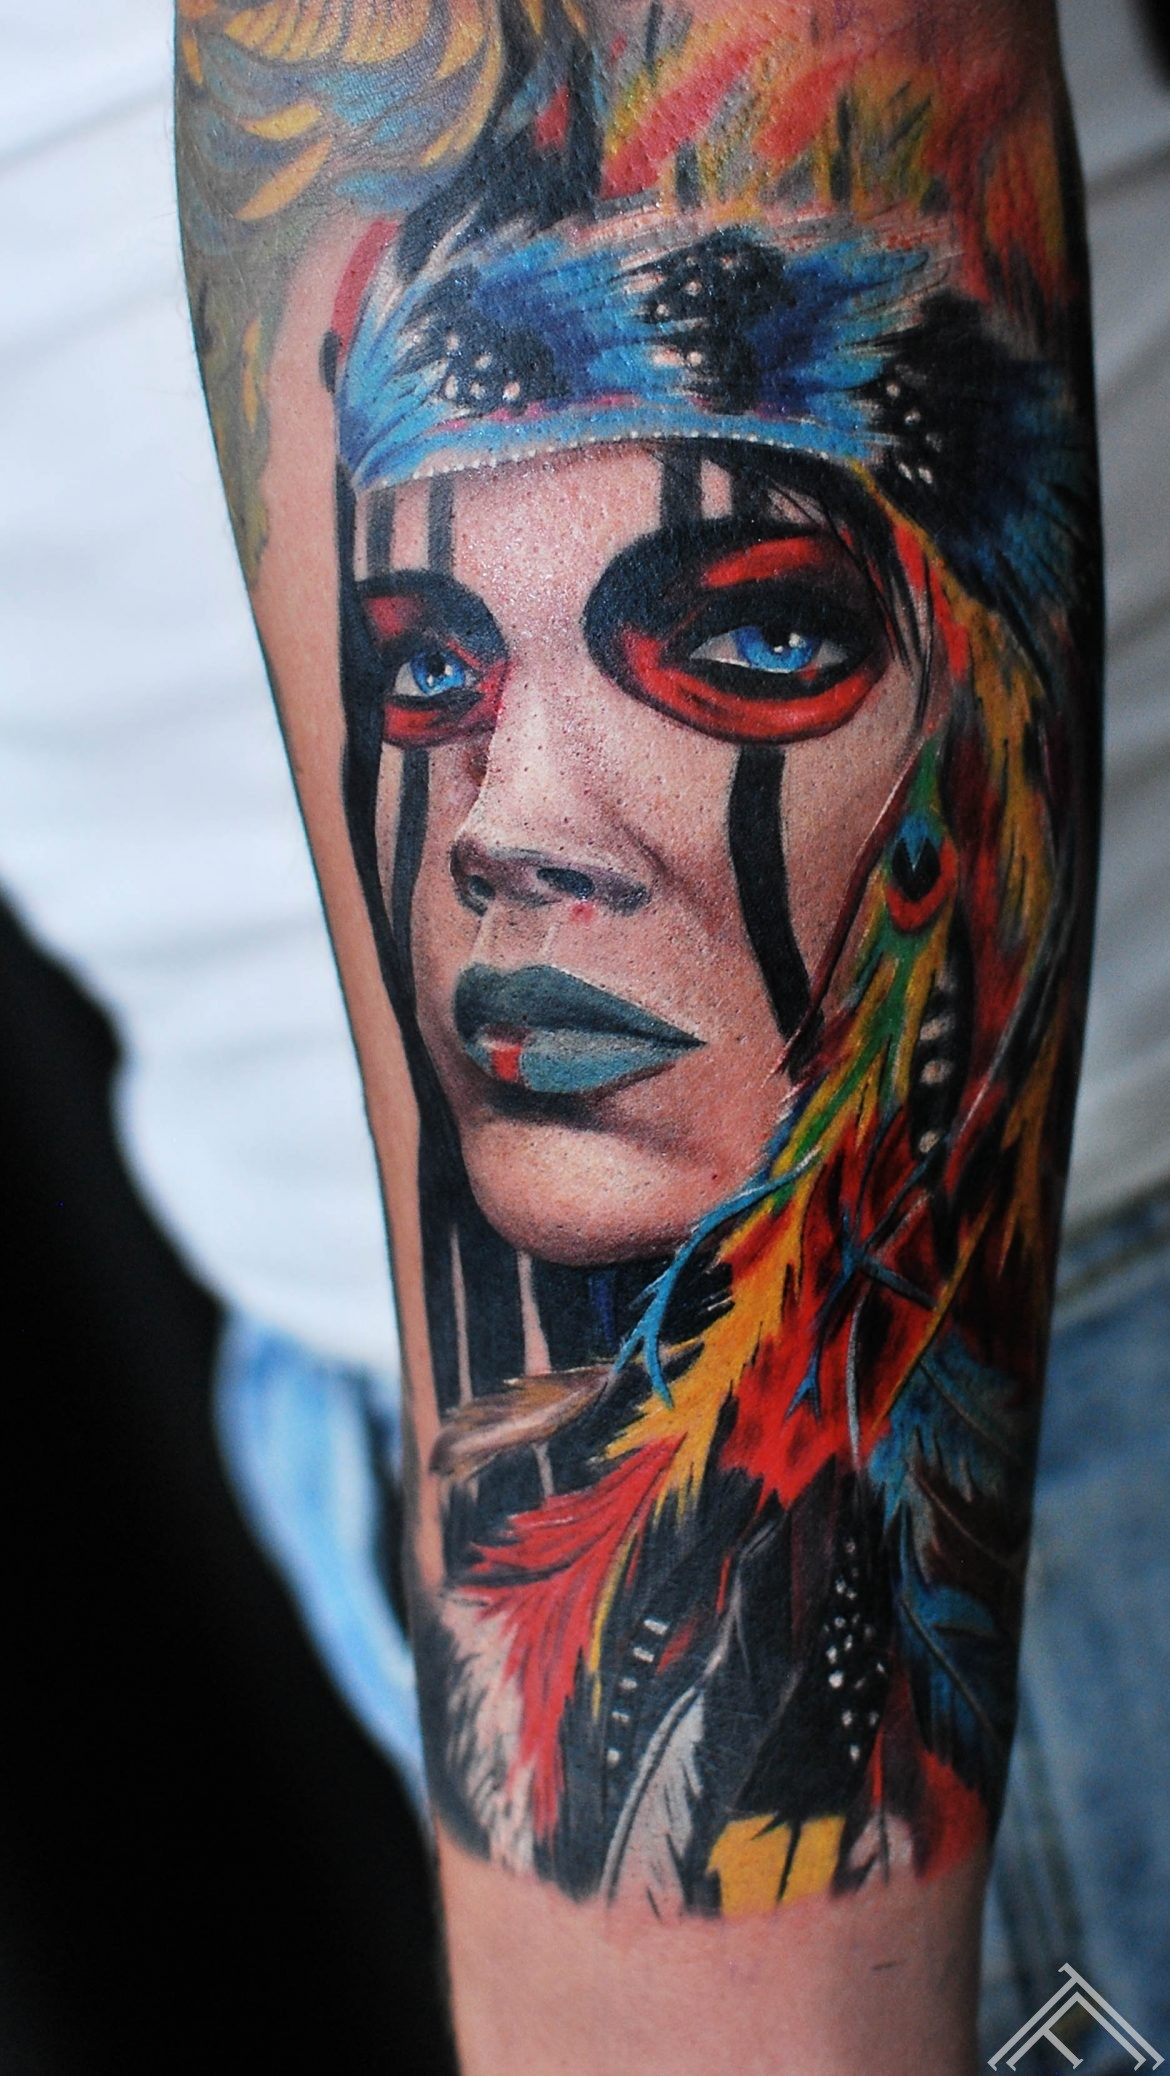 janisanderson-indian-woman-indianiete-sieviete-tattoo-tetovejums-tattoofrequency-riga